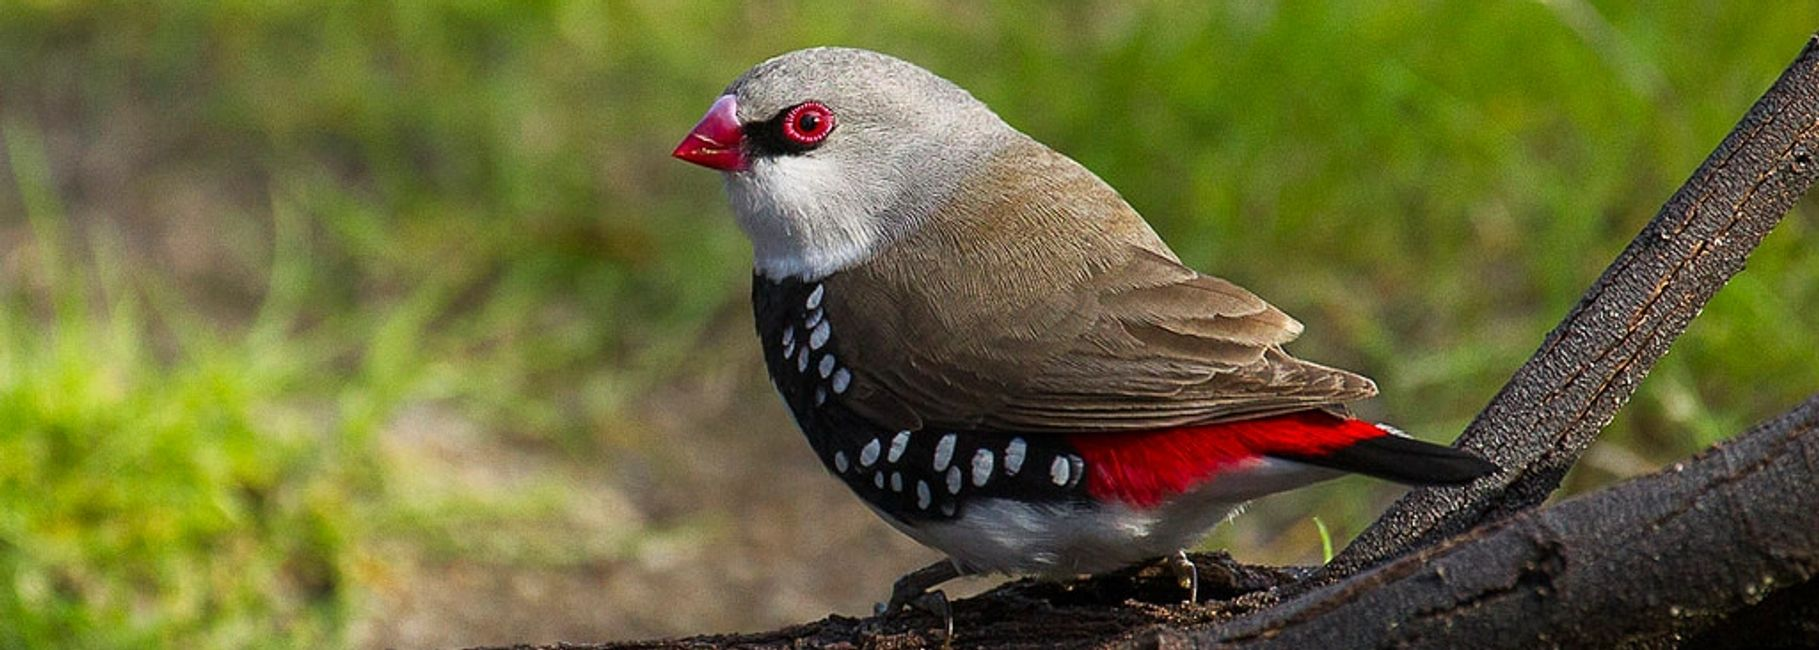 diamond firetail finch for sale in florida